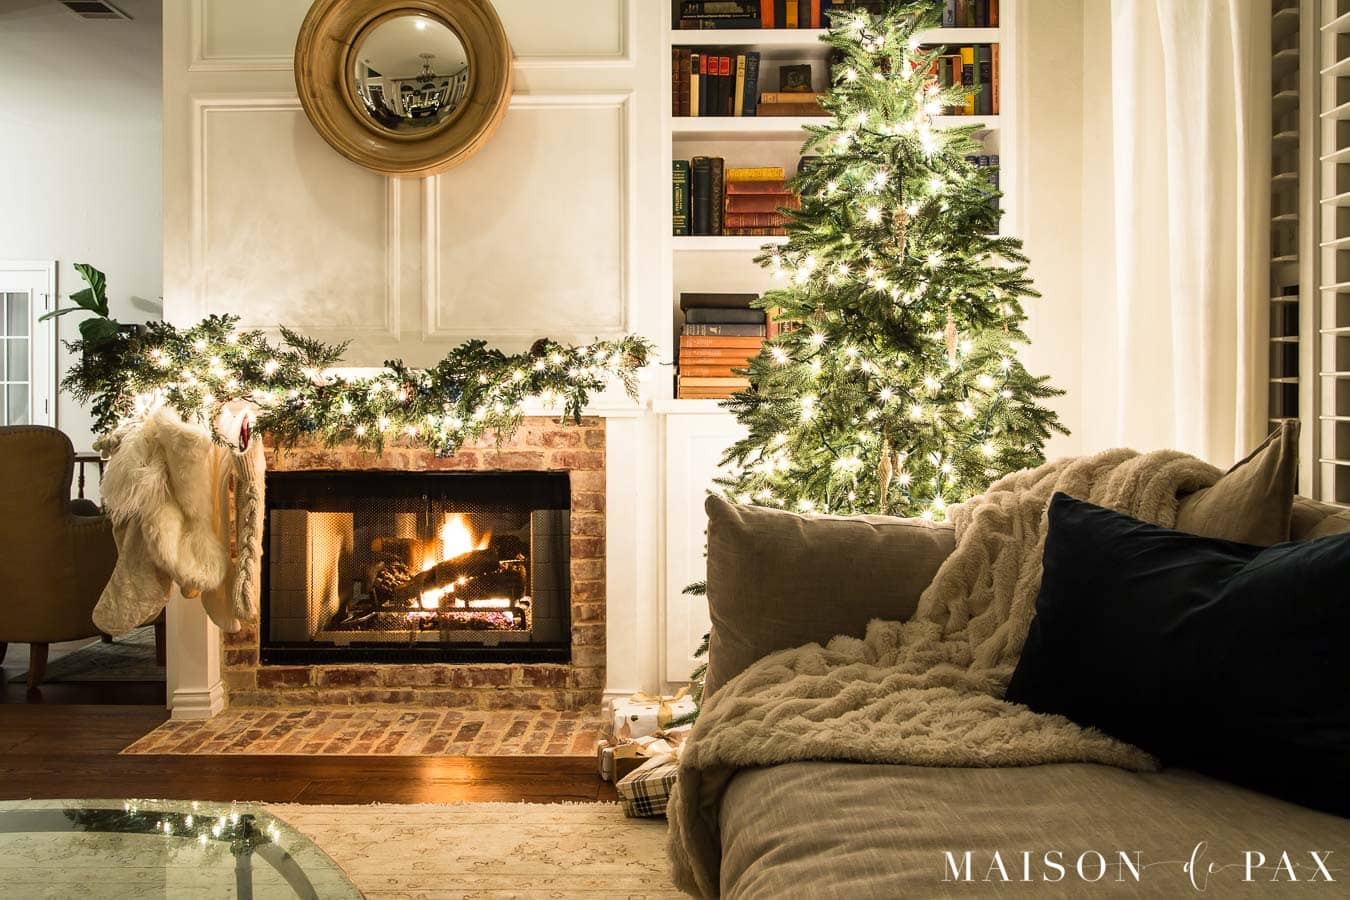 cozy couch beside christmas tree and fireplace | Maison de Pax